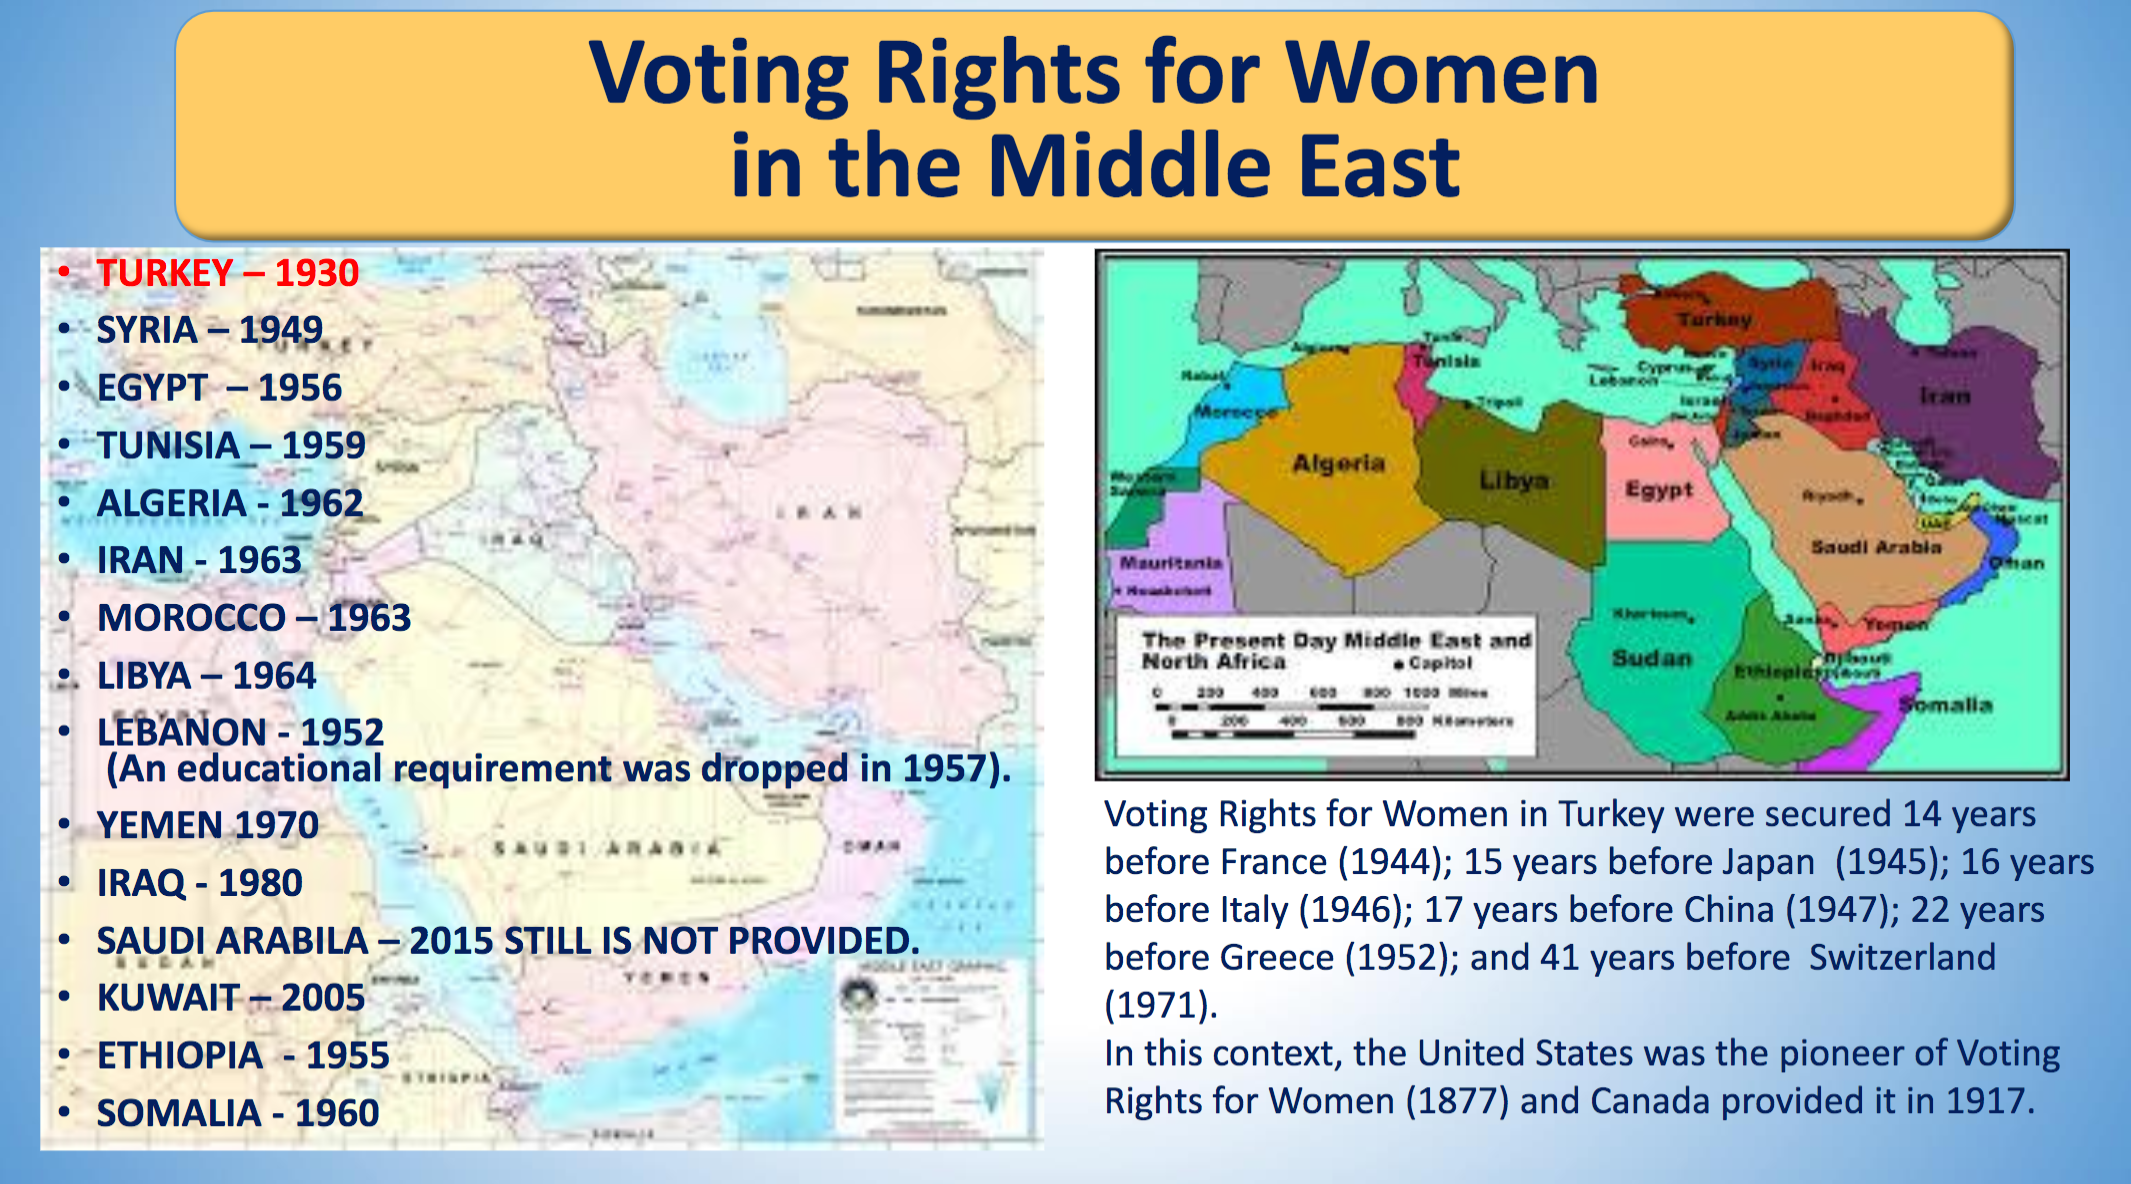 Voting Rights for Women in the Middle East